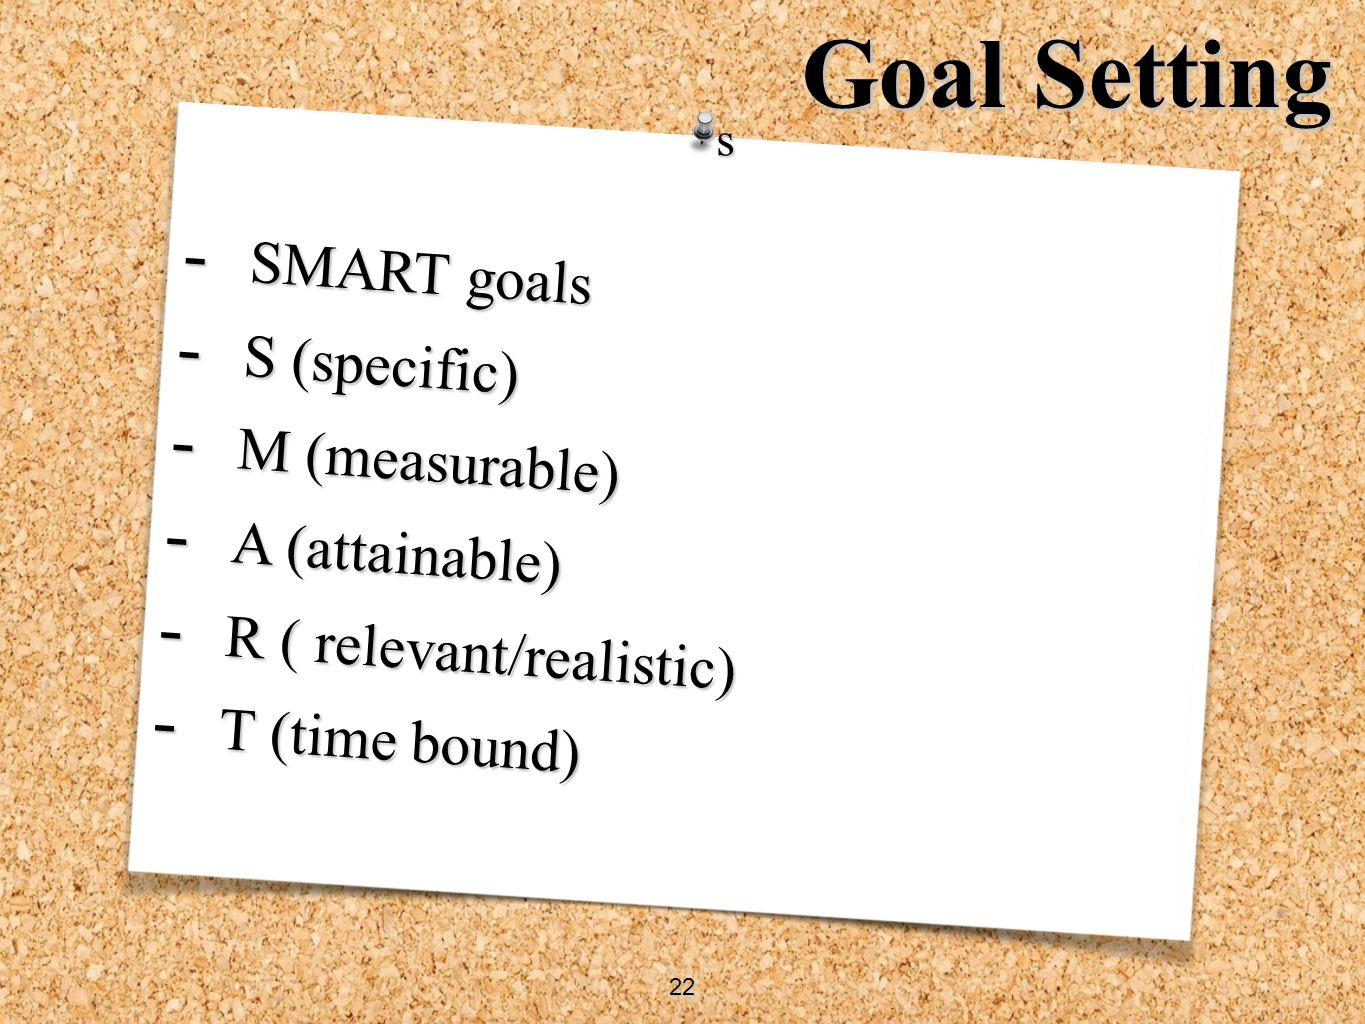 - SMART goals - S (specific) - M (measurable) - A (attainable) - R ( relevant/realistic) - T (time bound) s 22 Goal Setting